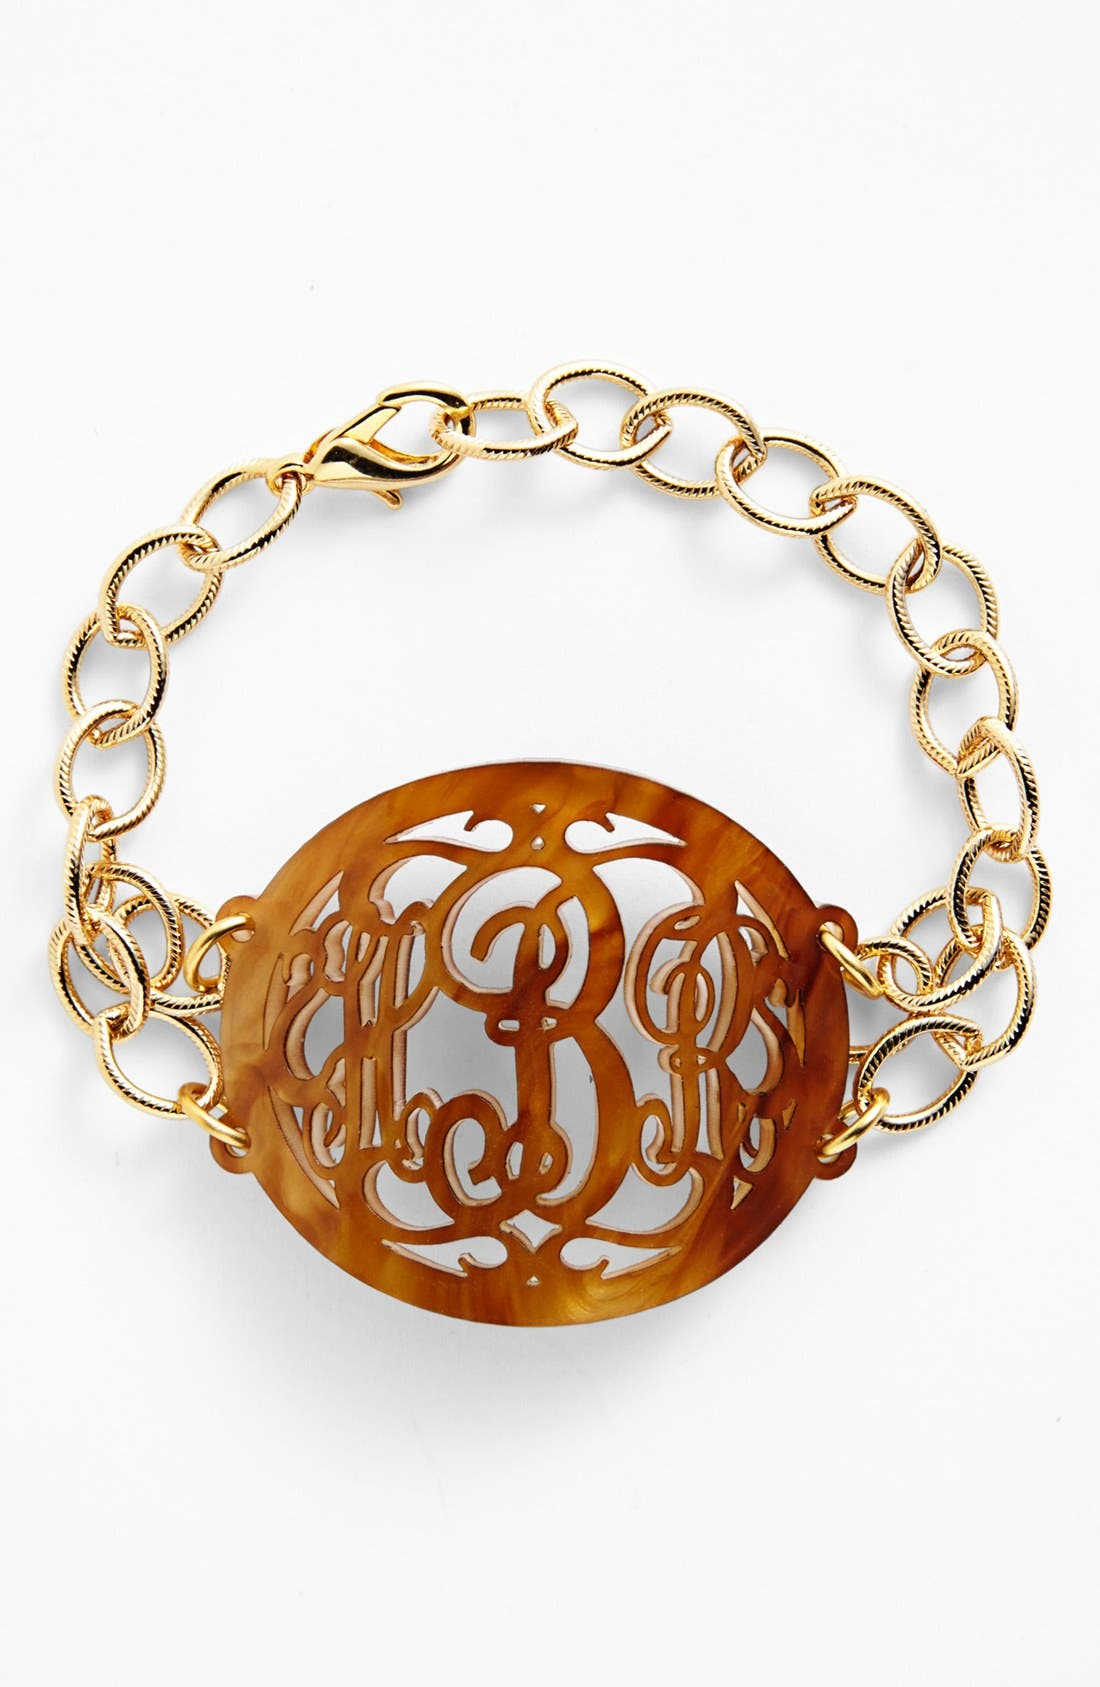 'Annabel' Large Oval Personalized Monogram Bracelet,                         Main,                         color, Tigers Eye/ Gold